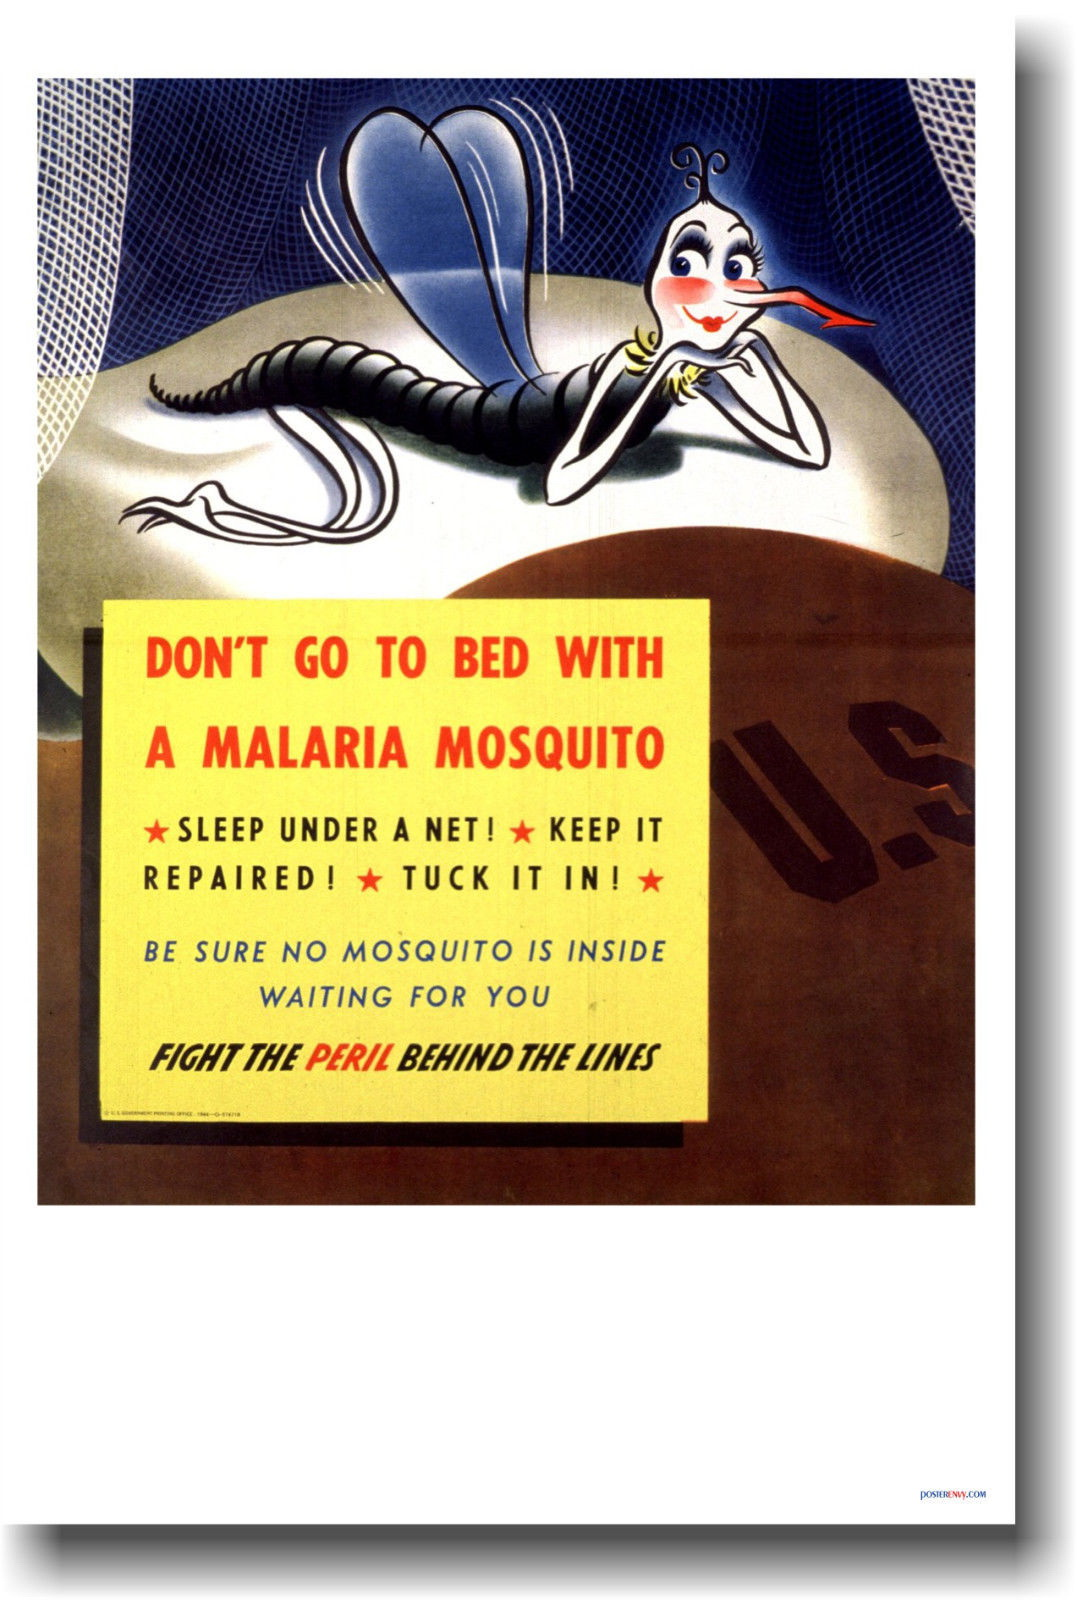 173270 Don't Go To Bed With a Malaria Mosquito VINTAGE WALL PRINT POSTER CA